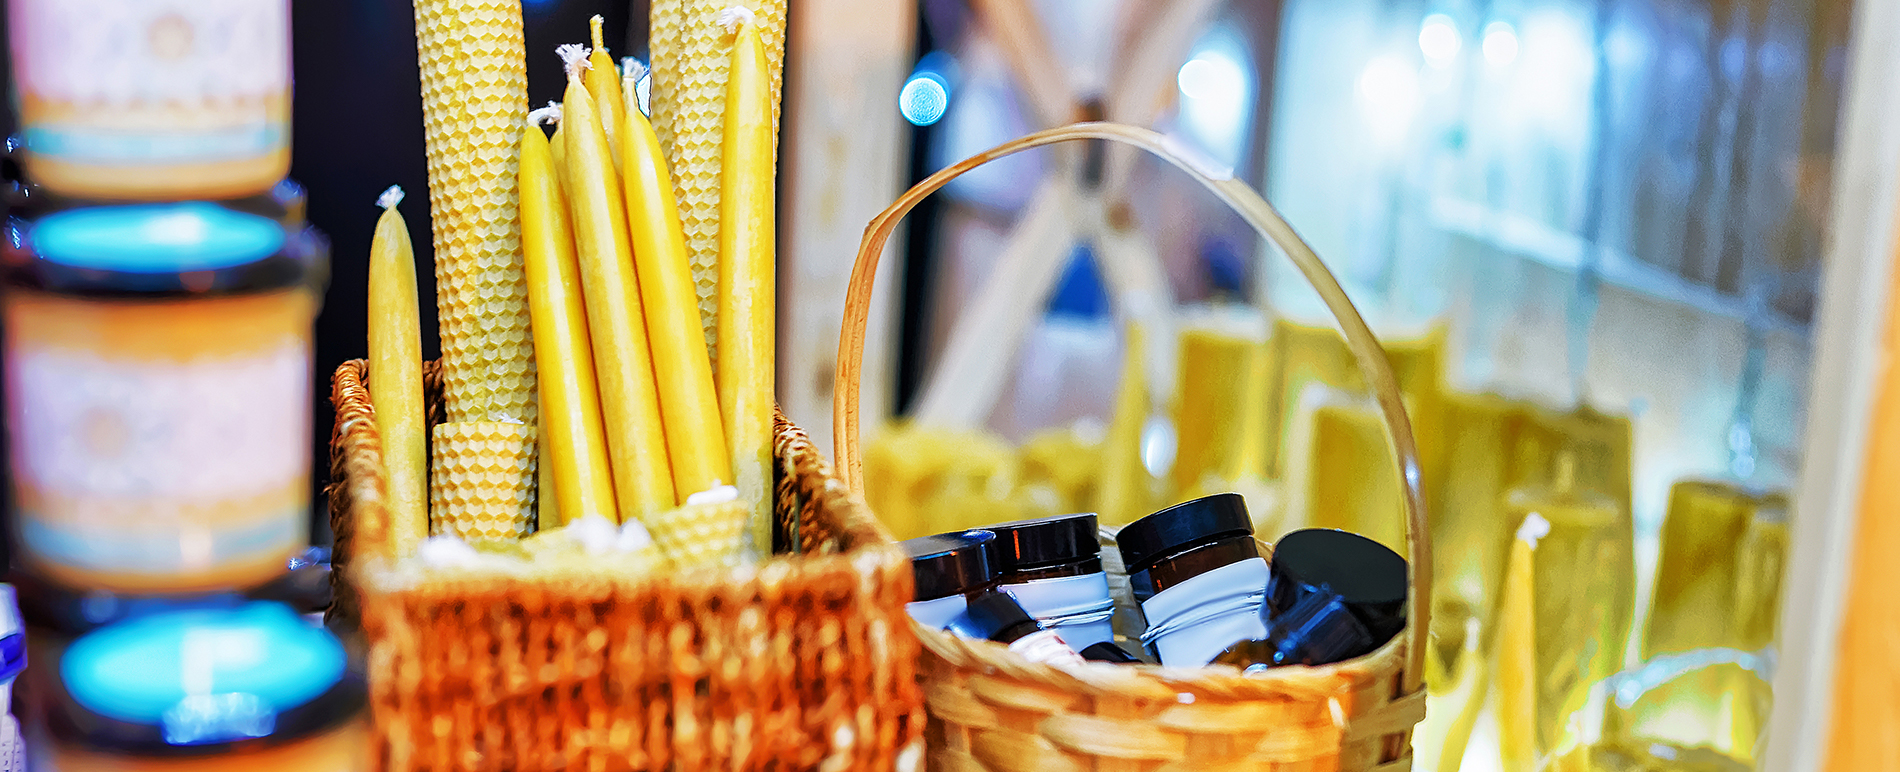 Collection of candles and other gifts. Verona shopping